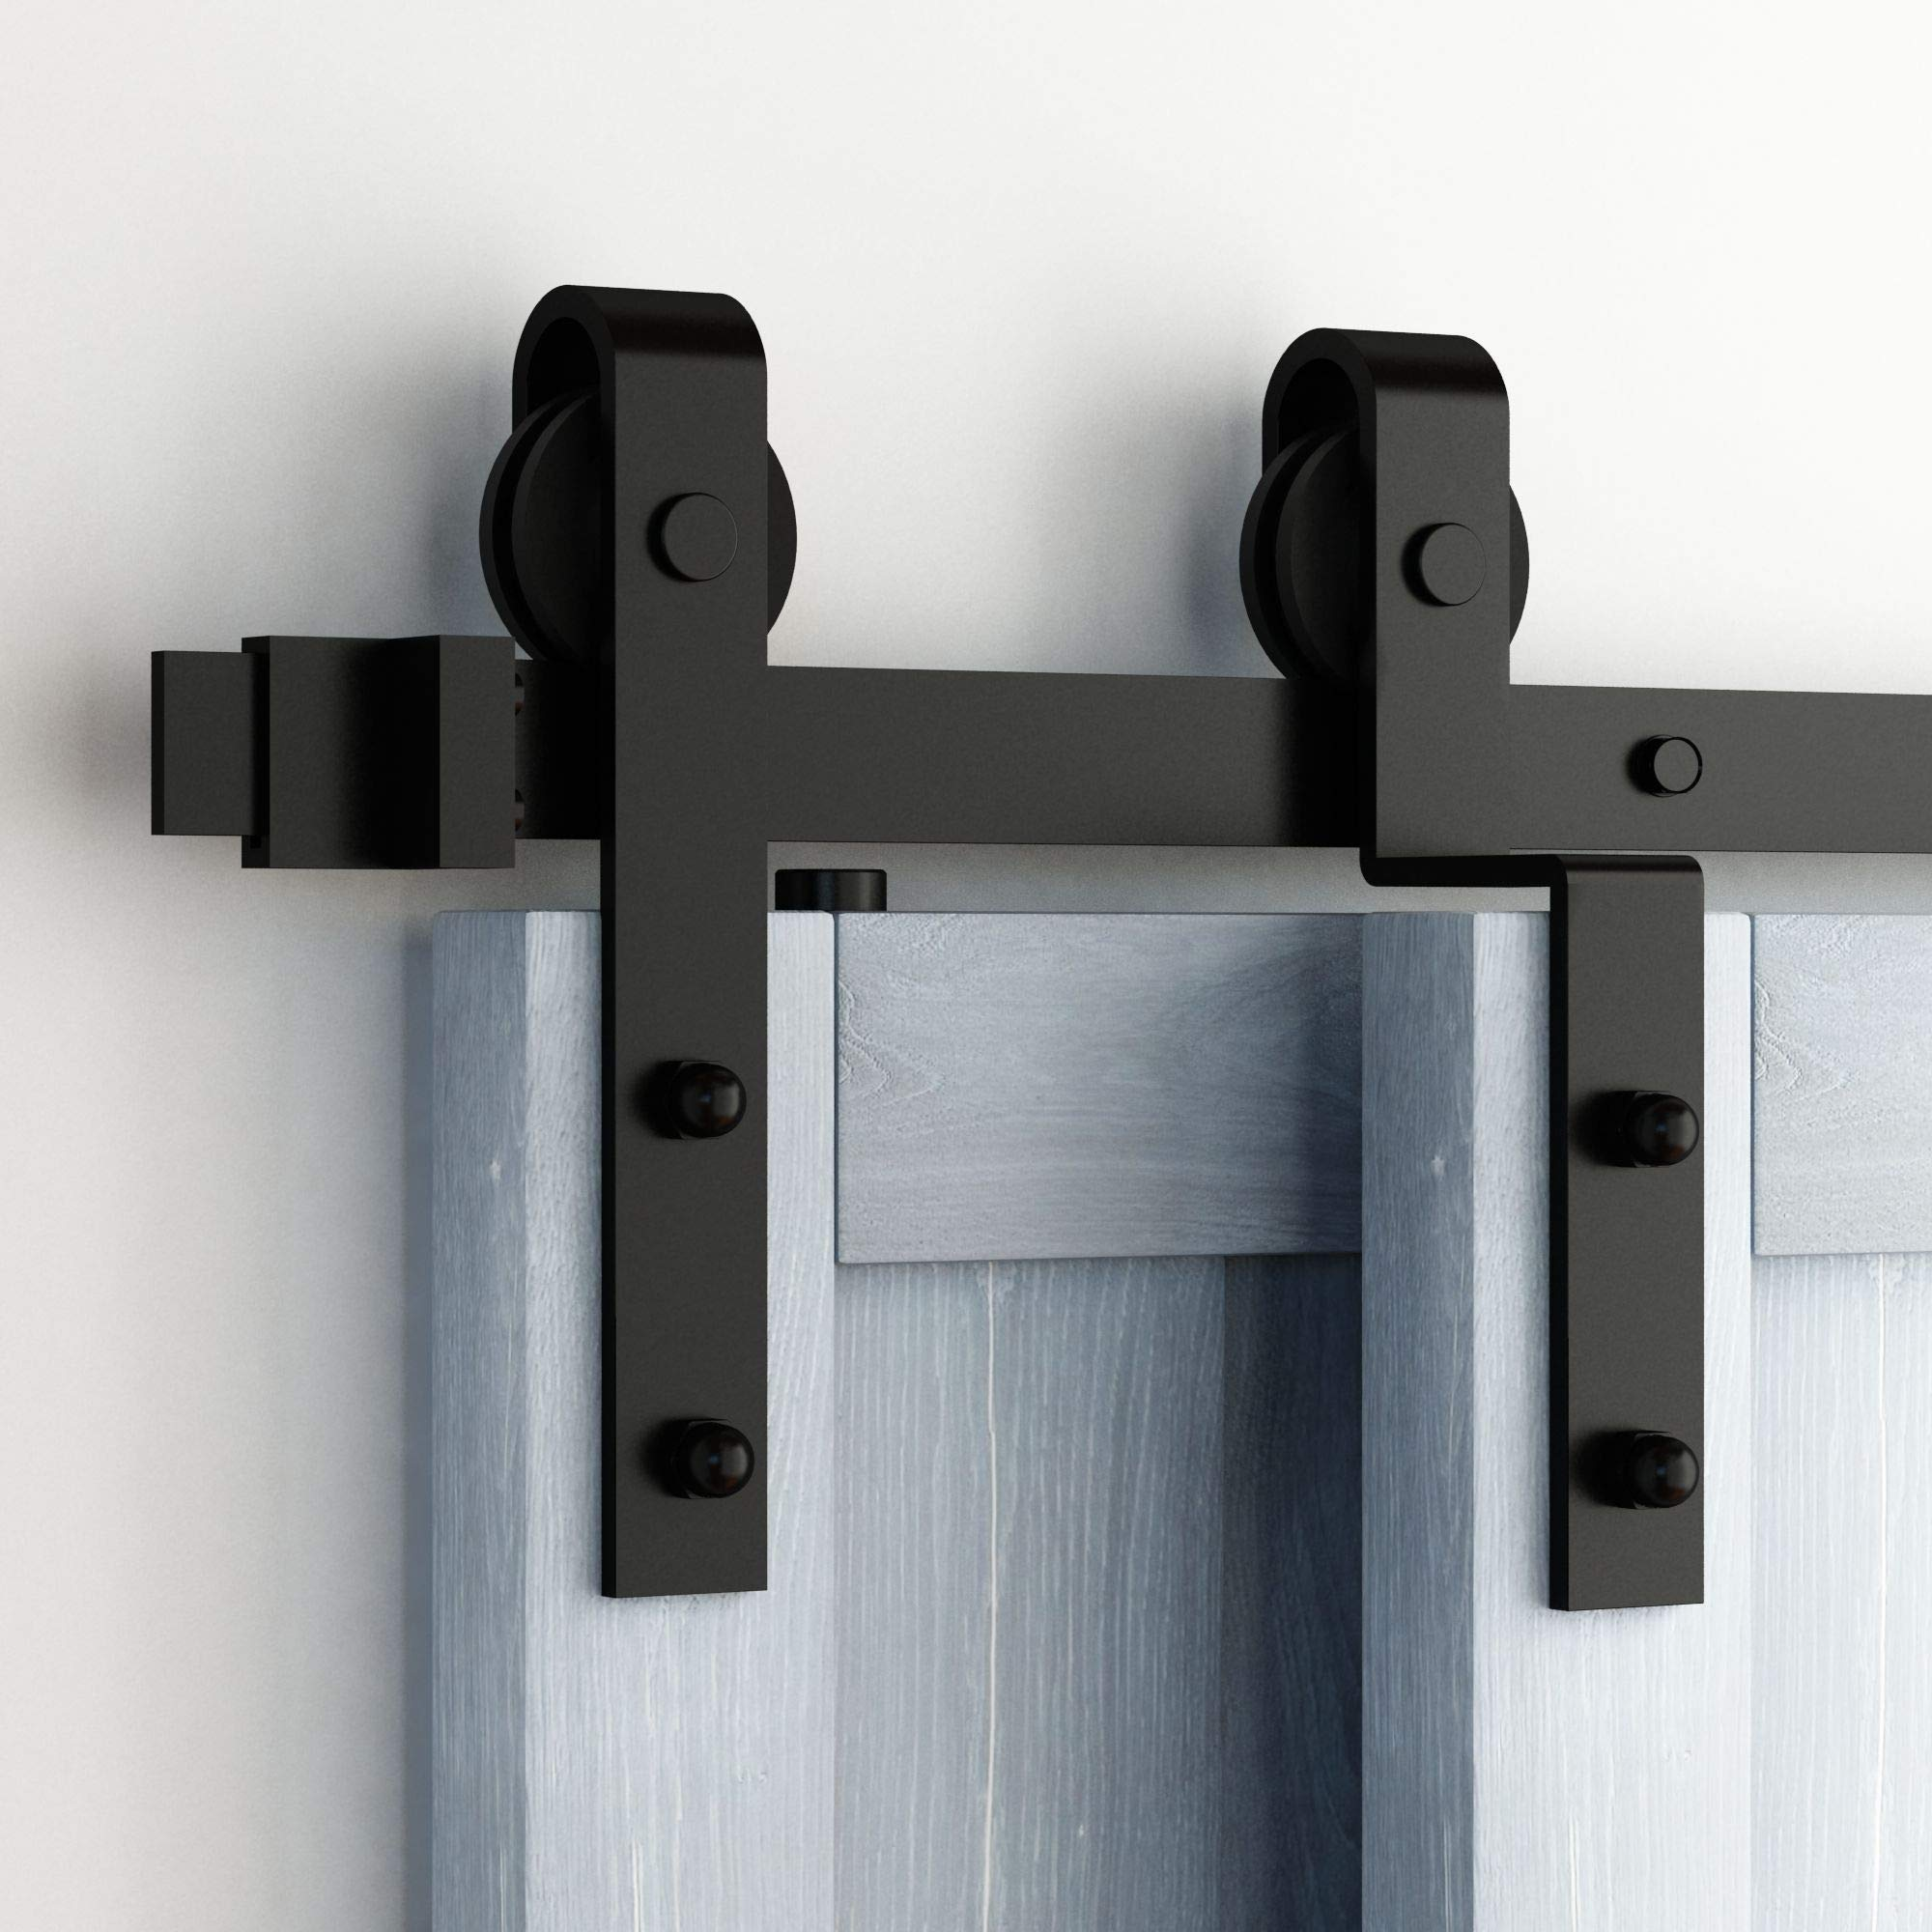 Homacer Sliding Barn Door Hardware Single Track Bypass Double Door Kit, 7.5FT Flat Track Classic Design Roller, Black Rustic Heavy Duty Interior Exterior Use